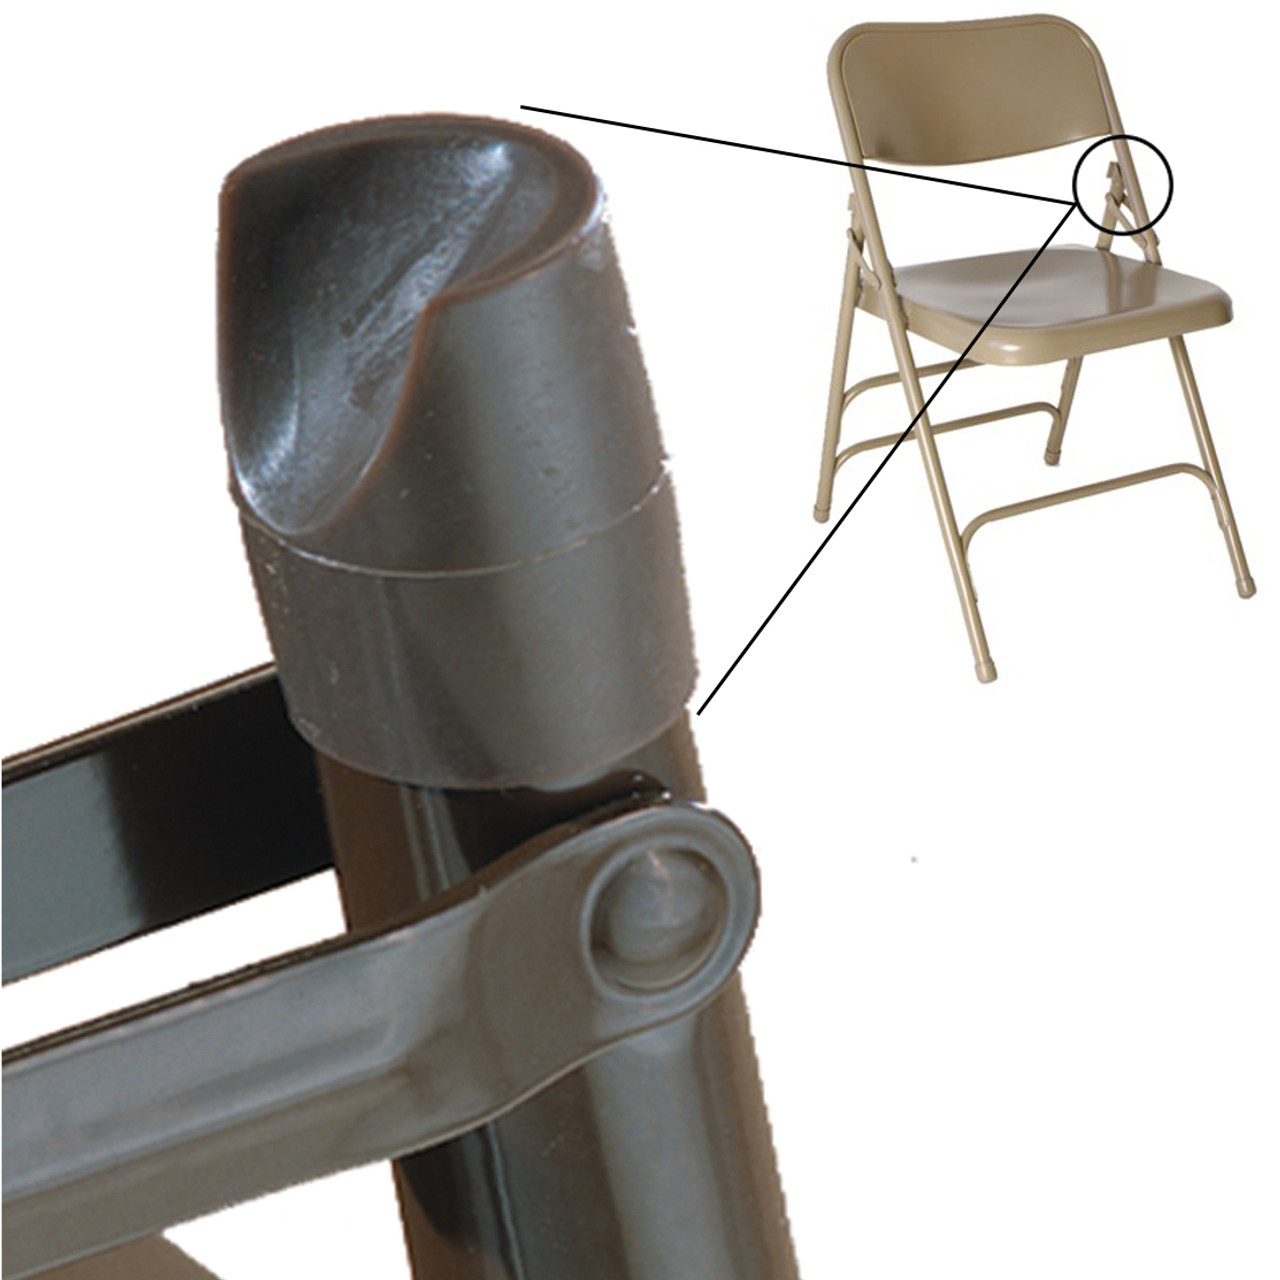 Metal Chairs Individual Pieces Plastic Stability Caps For Metal And Padded Folding Chairs Fits 7 8